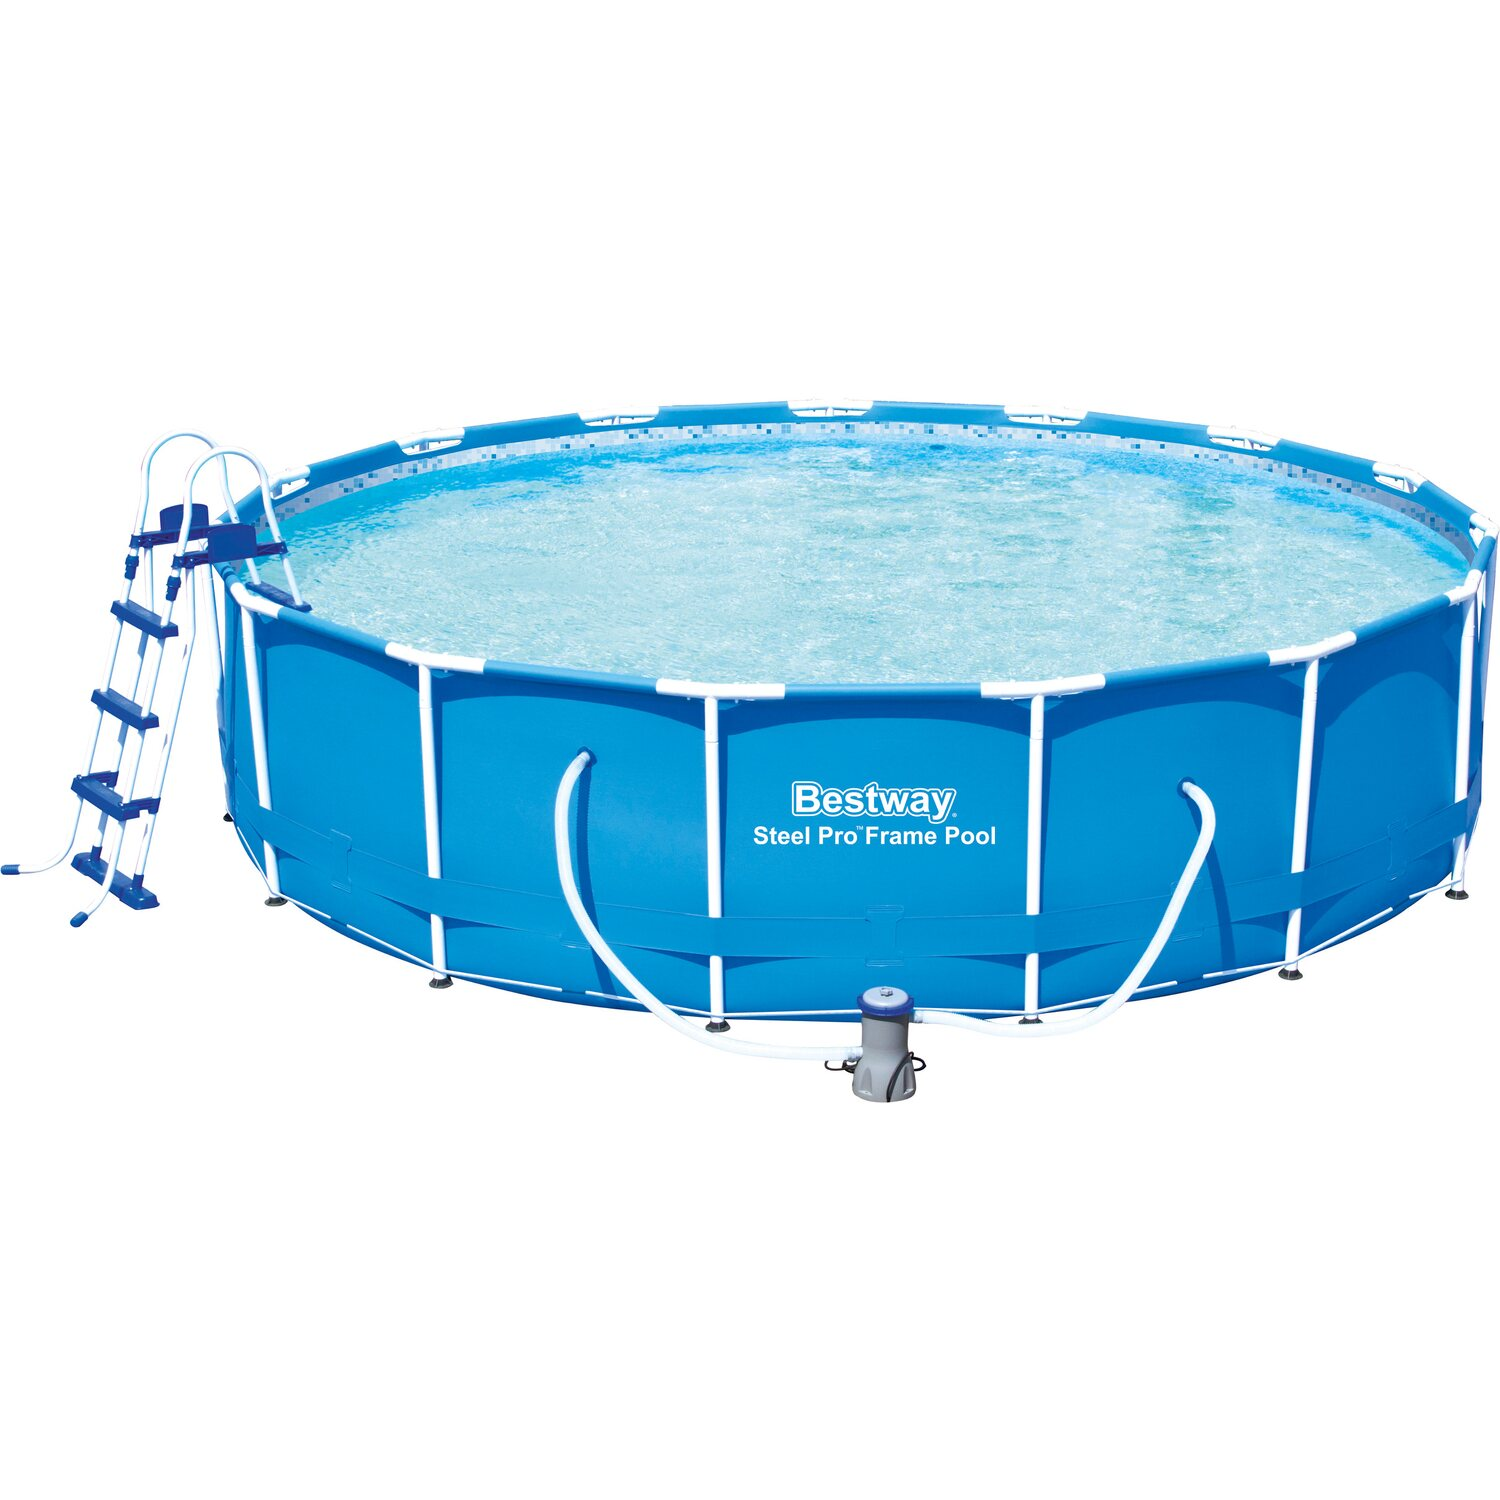 Bestway stahlrahmen pool set 457 cm x 107 cm kaufen bei obi for Obi pool set